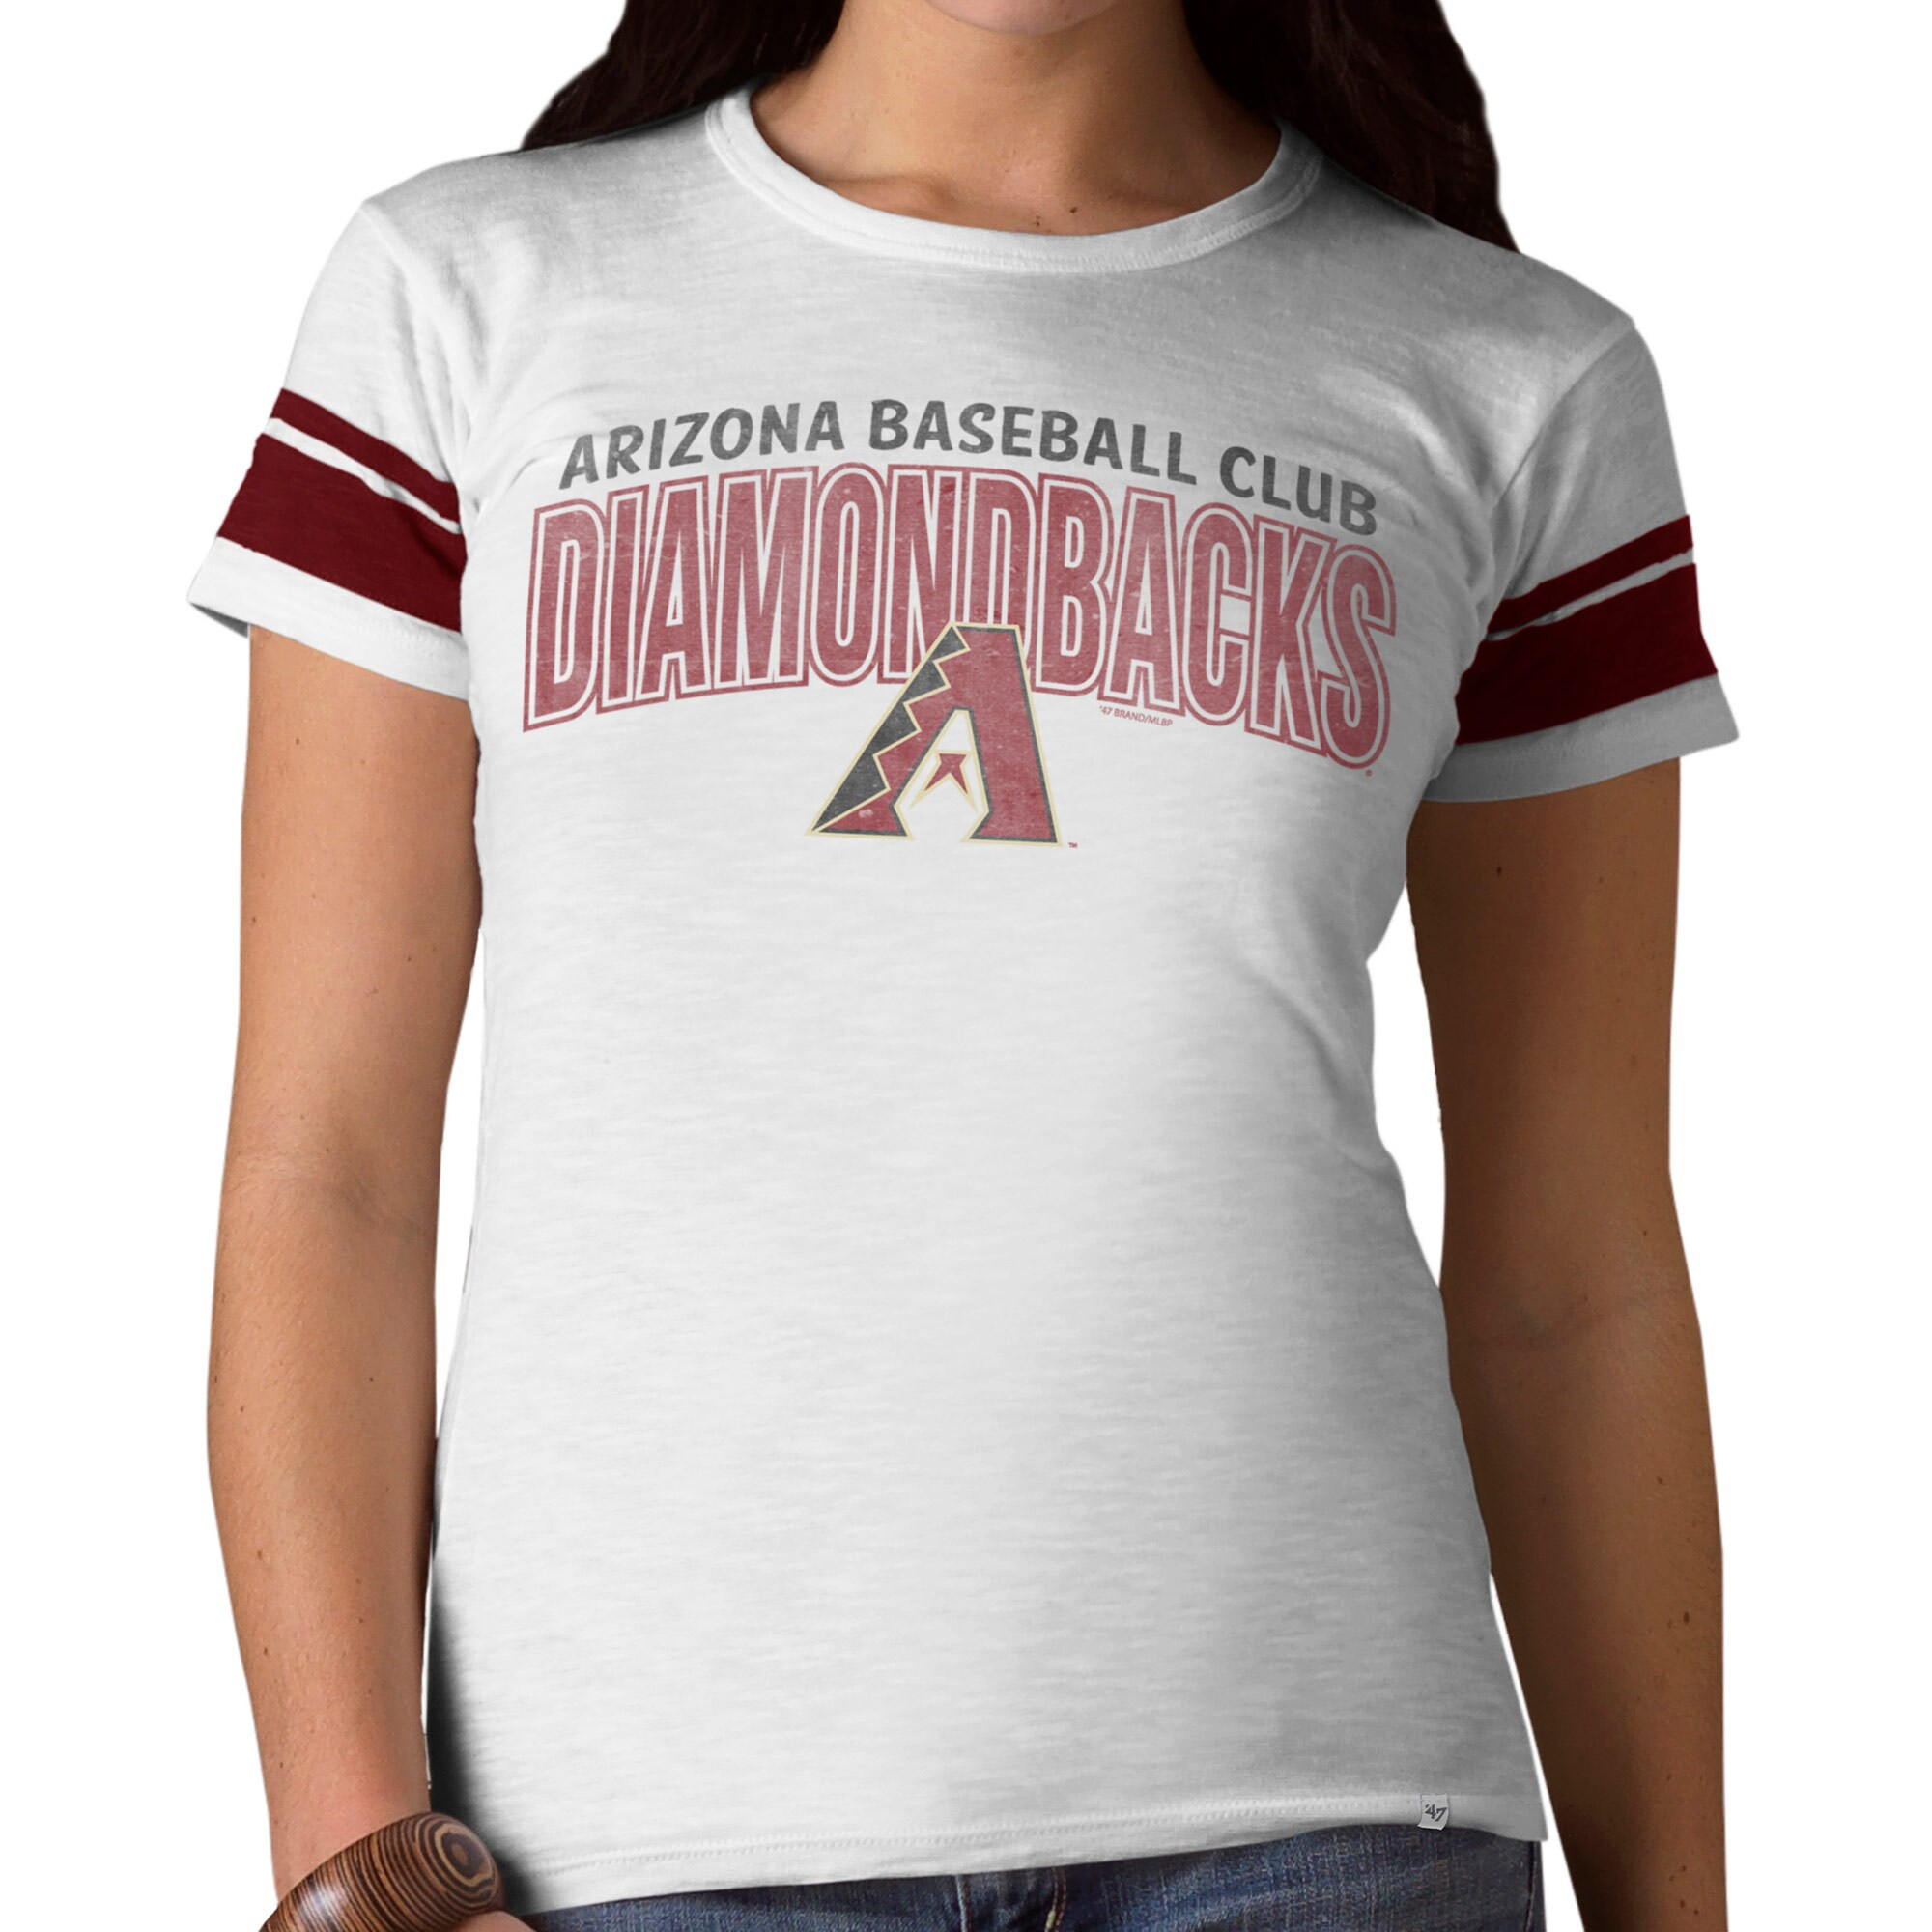 Arizona Diamondbacks '47 Women's Game Time II T-Shirt - White